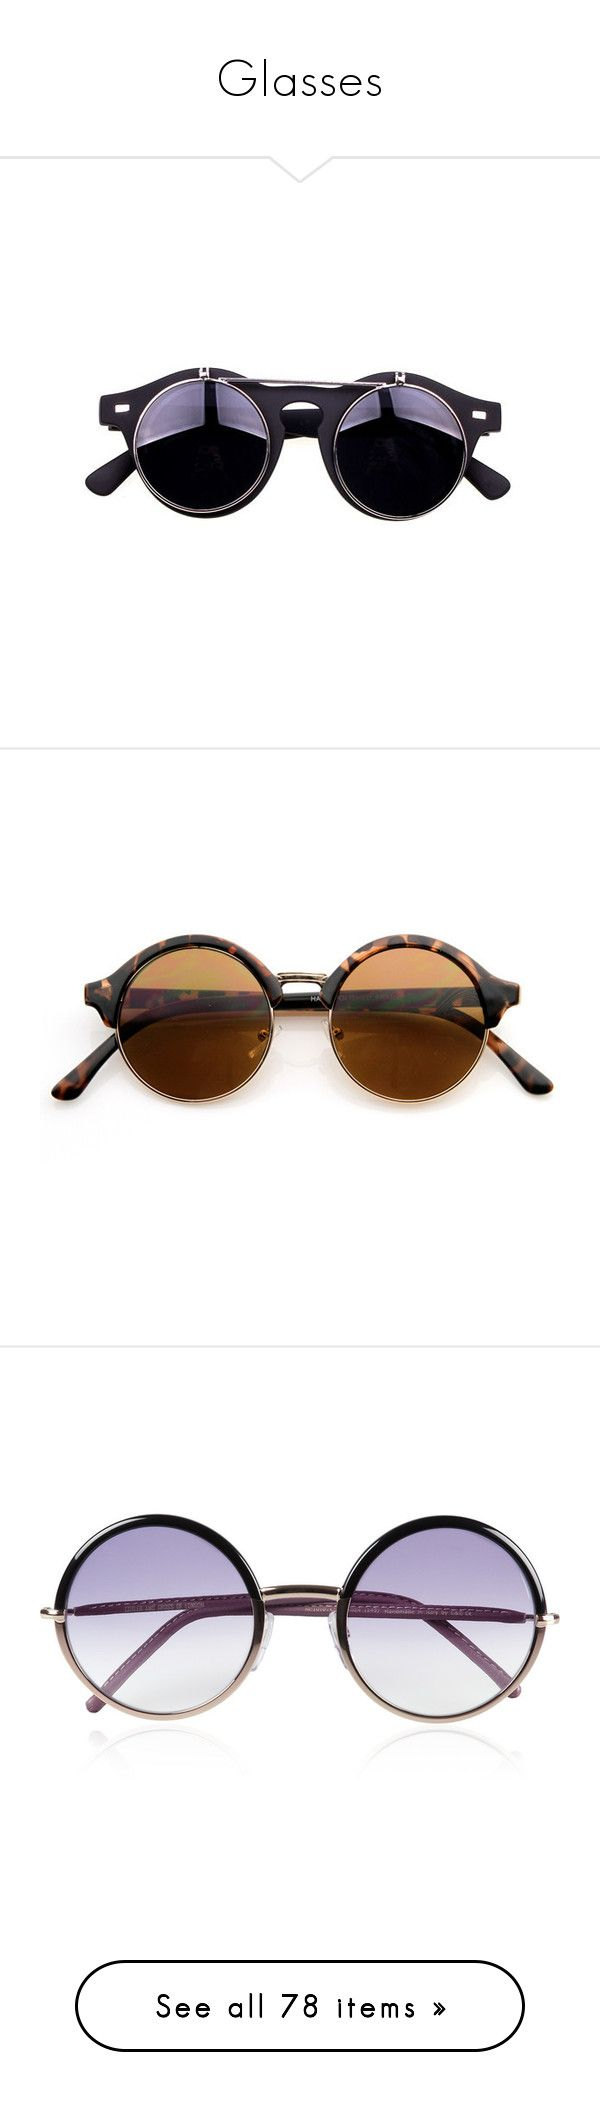 """""""Glasses"""" by mizaha ❤ liked on Polyvore featuring accessories, eyewear, sunglasses, glasses, chicnova, round lens sunglasses, vintage sunglasses, vintage round sunglasses, vintage eyewear and round sunglasses"""